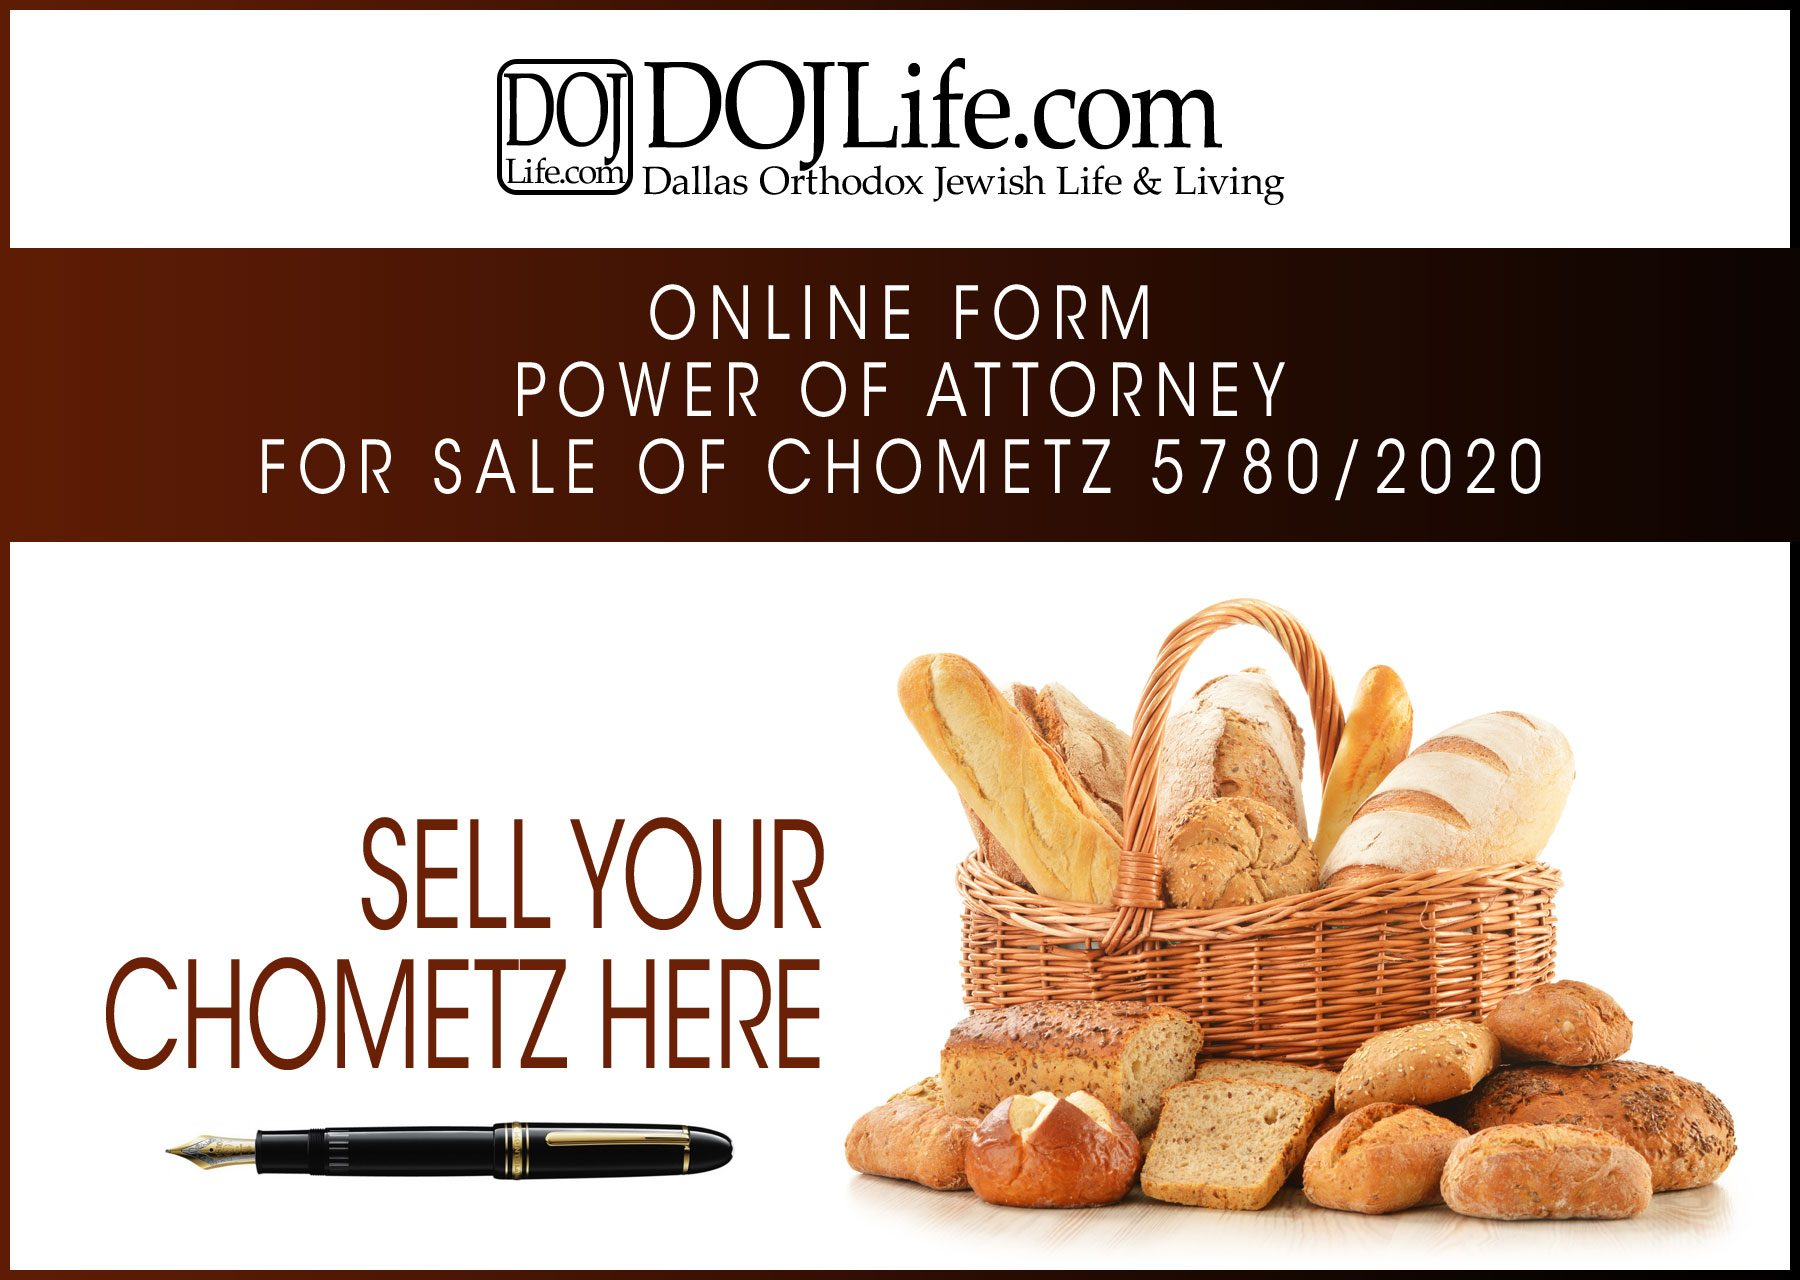 Online Power of Attorney for Sale of Chometz Form 5780/2020